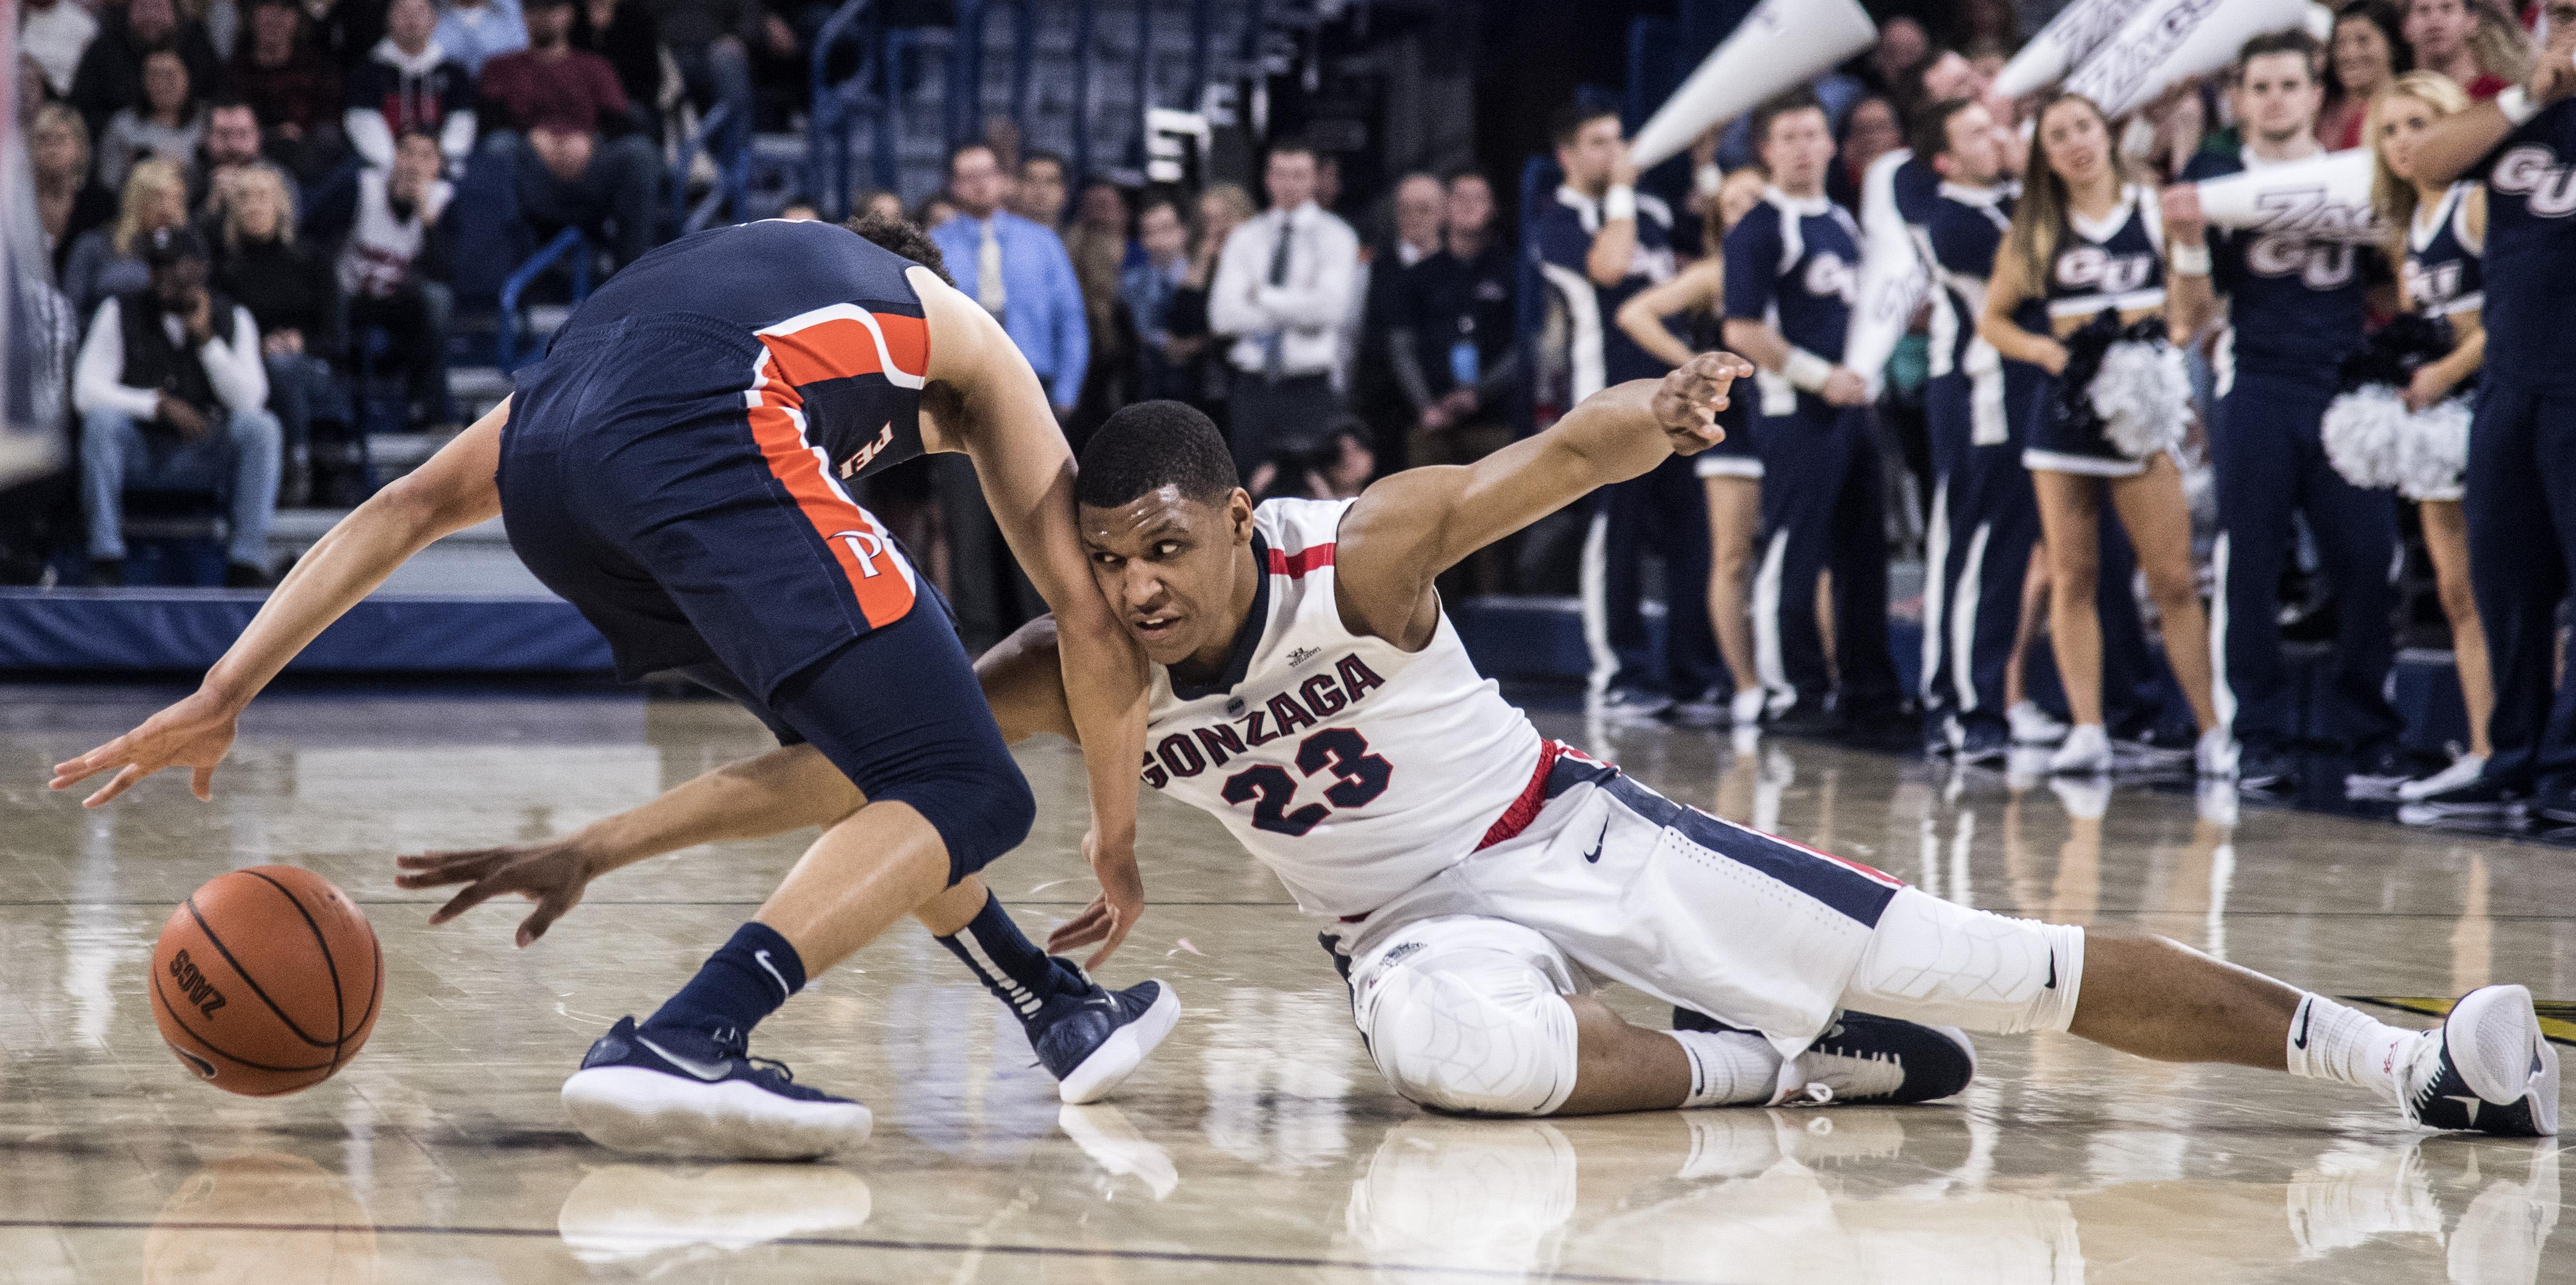 Grip on Sports: It seems like a good day to dive for the loose ball